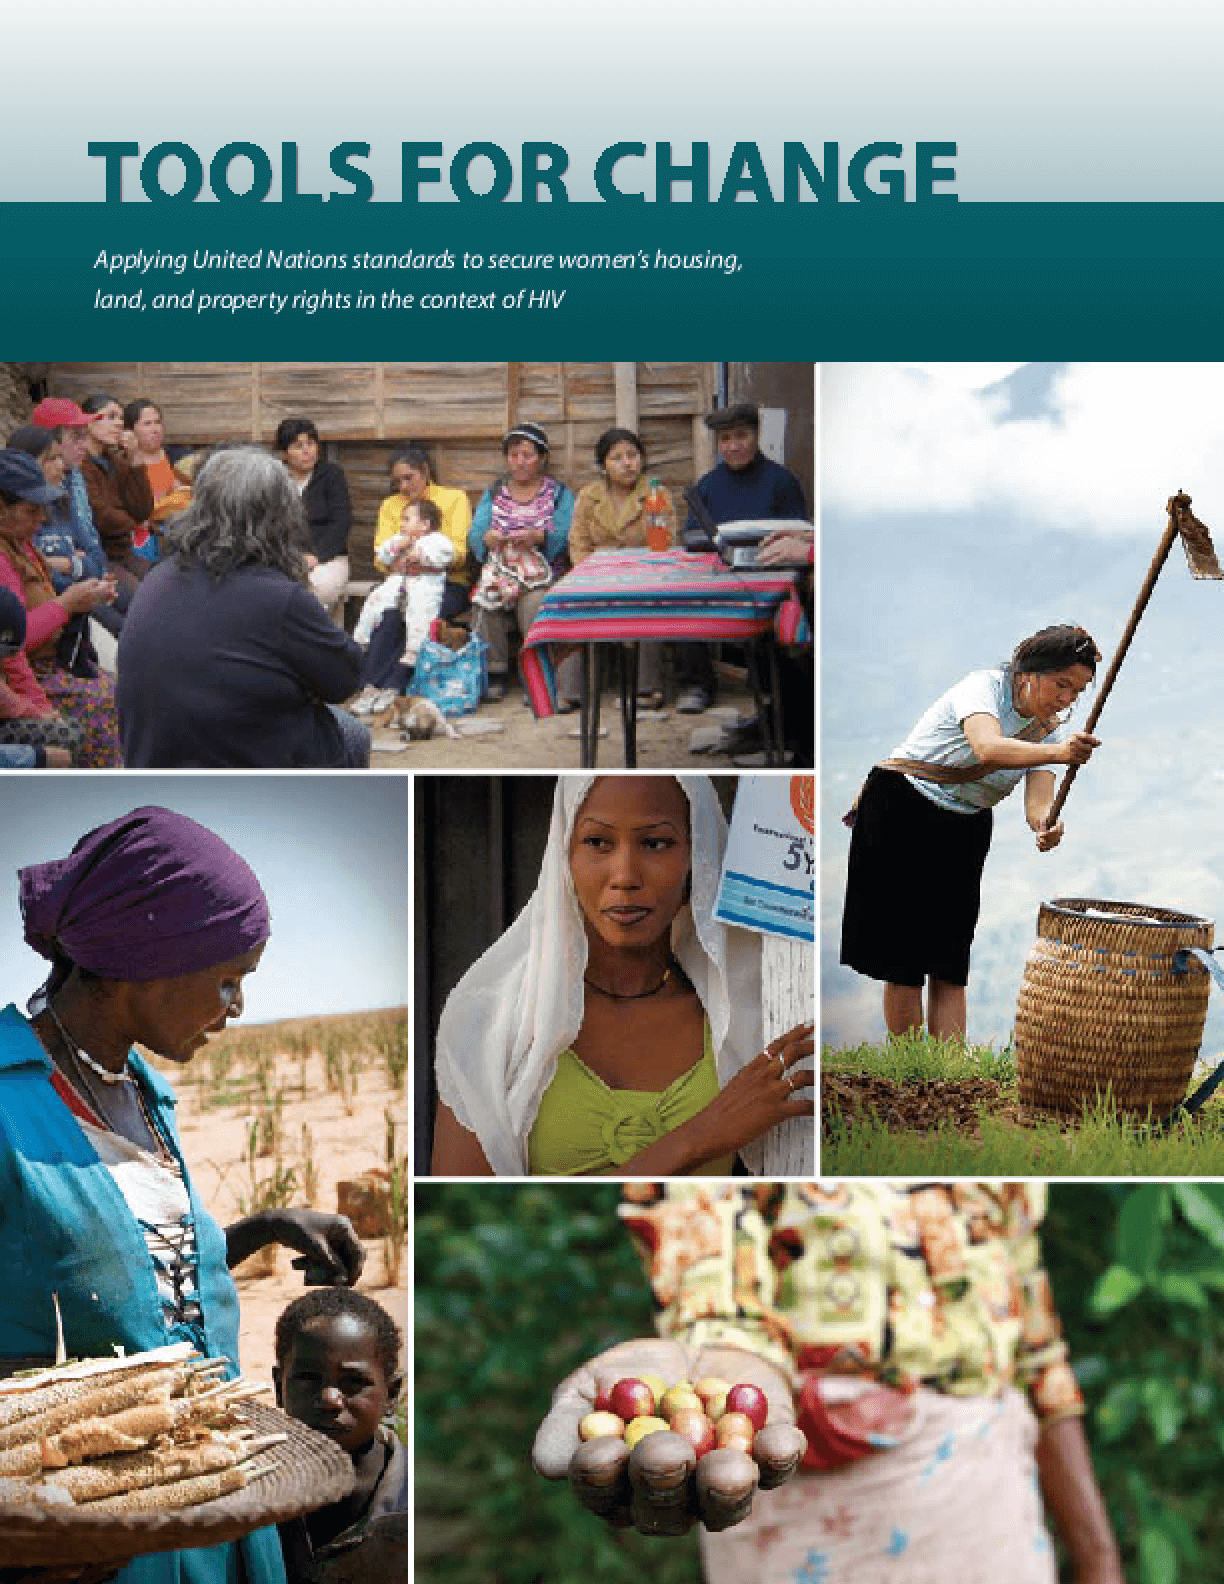 Tools for Change: Applying United Nations Standards to Secure Women's Housing, Land, and Property Rights in the Context of HIV